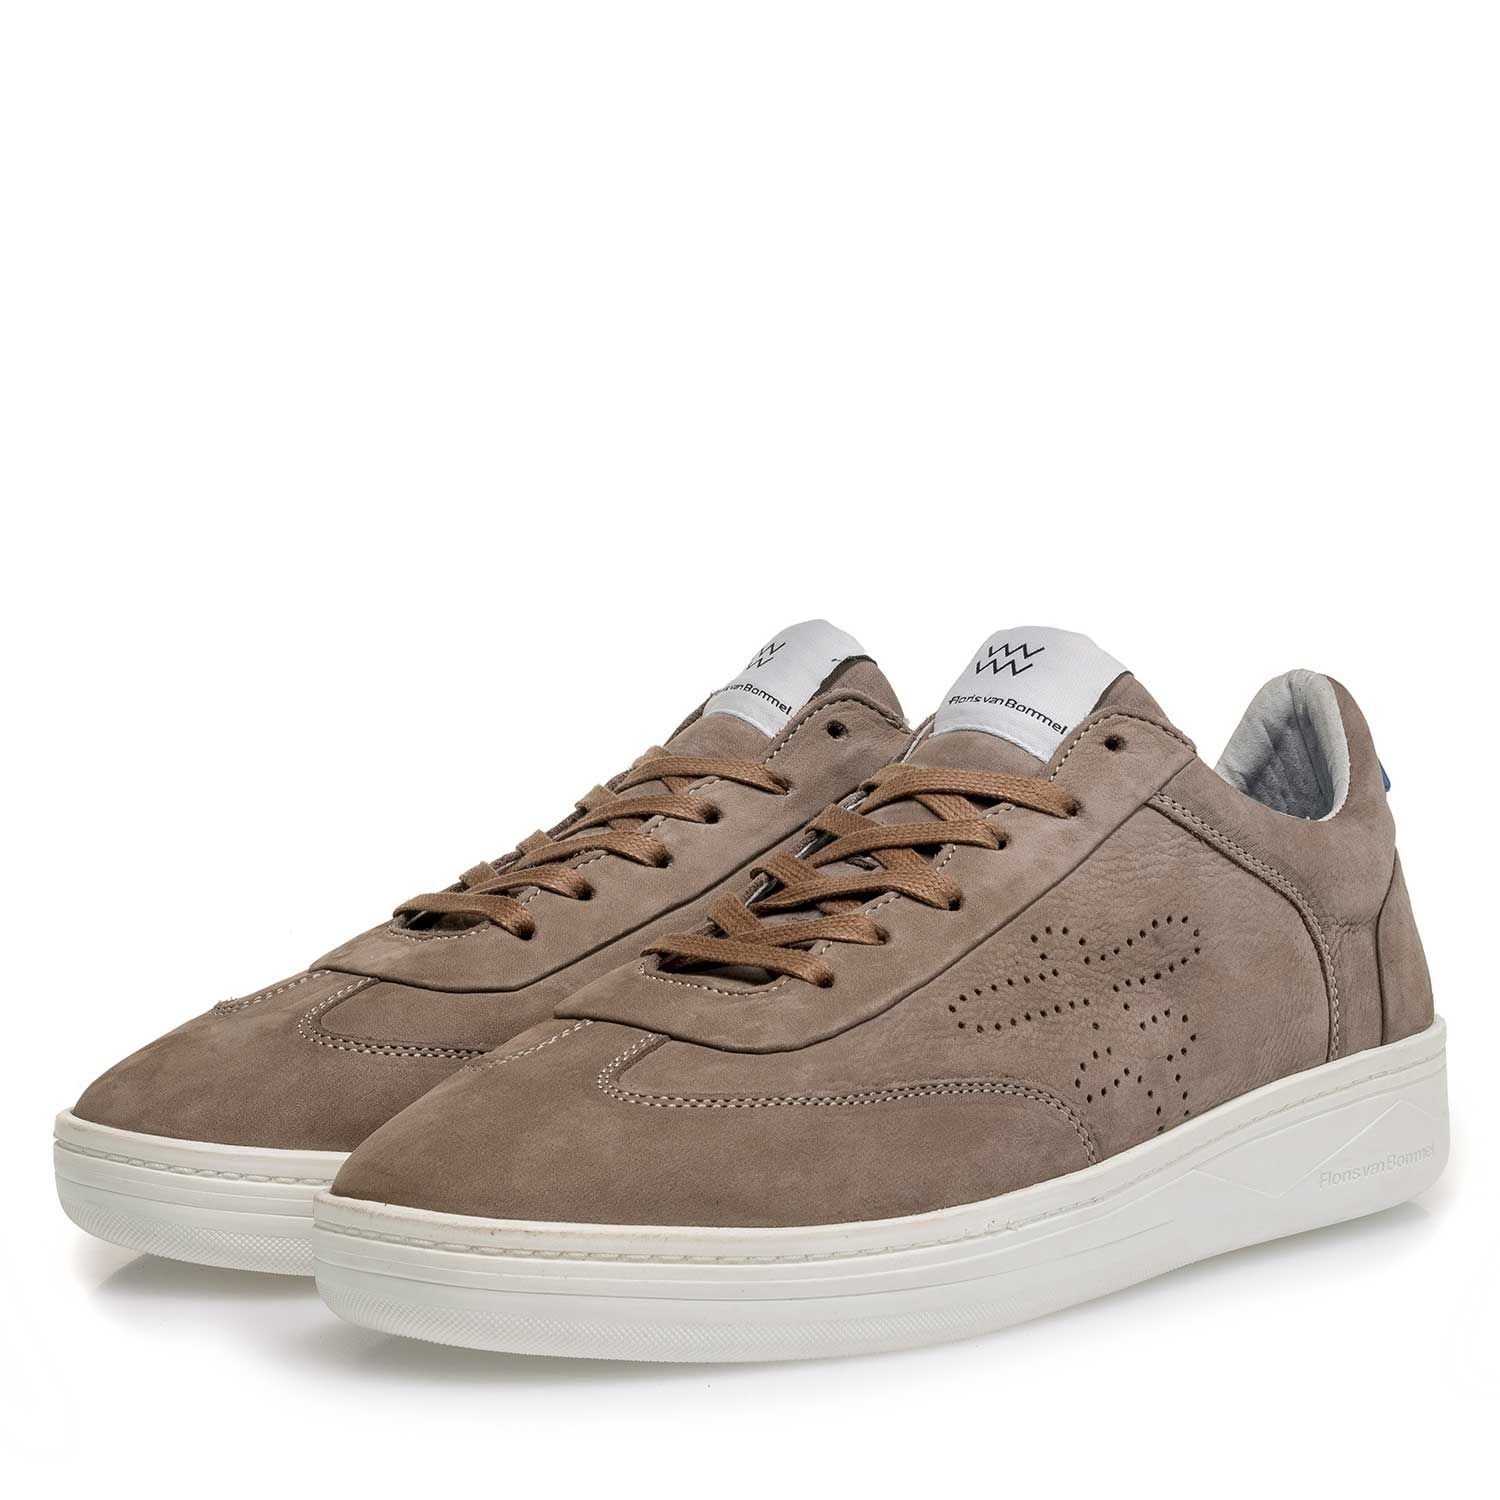 16255/06 - Taupe-coloured nubuck leather sneaker